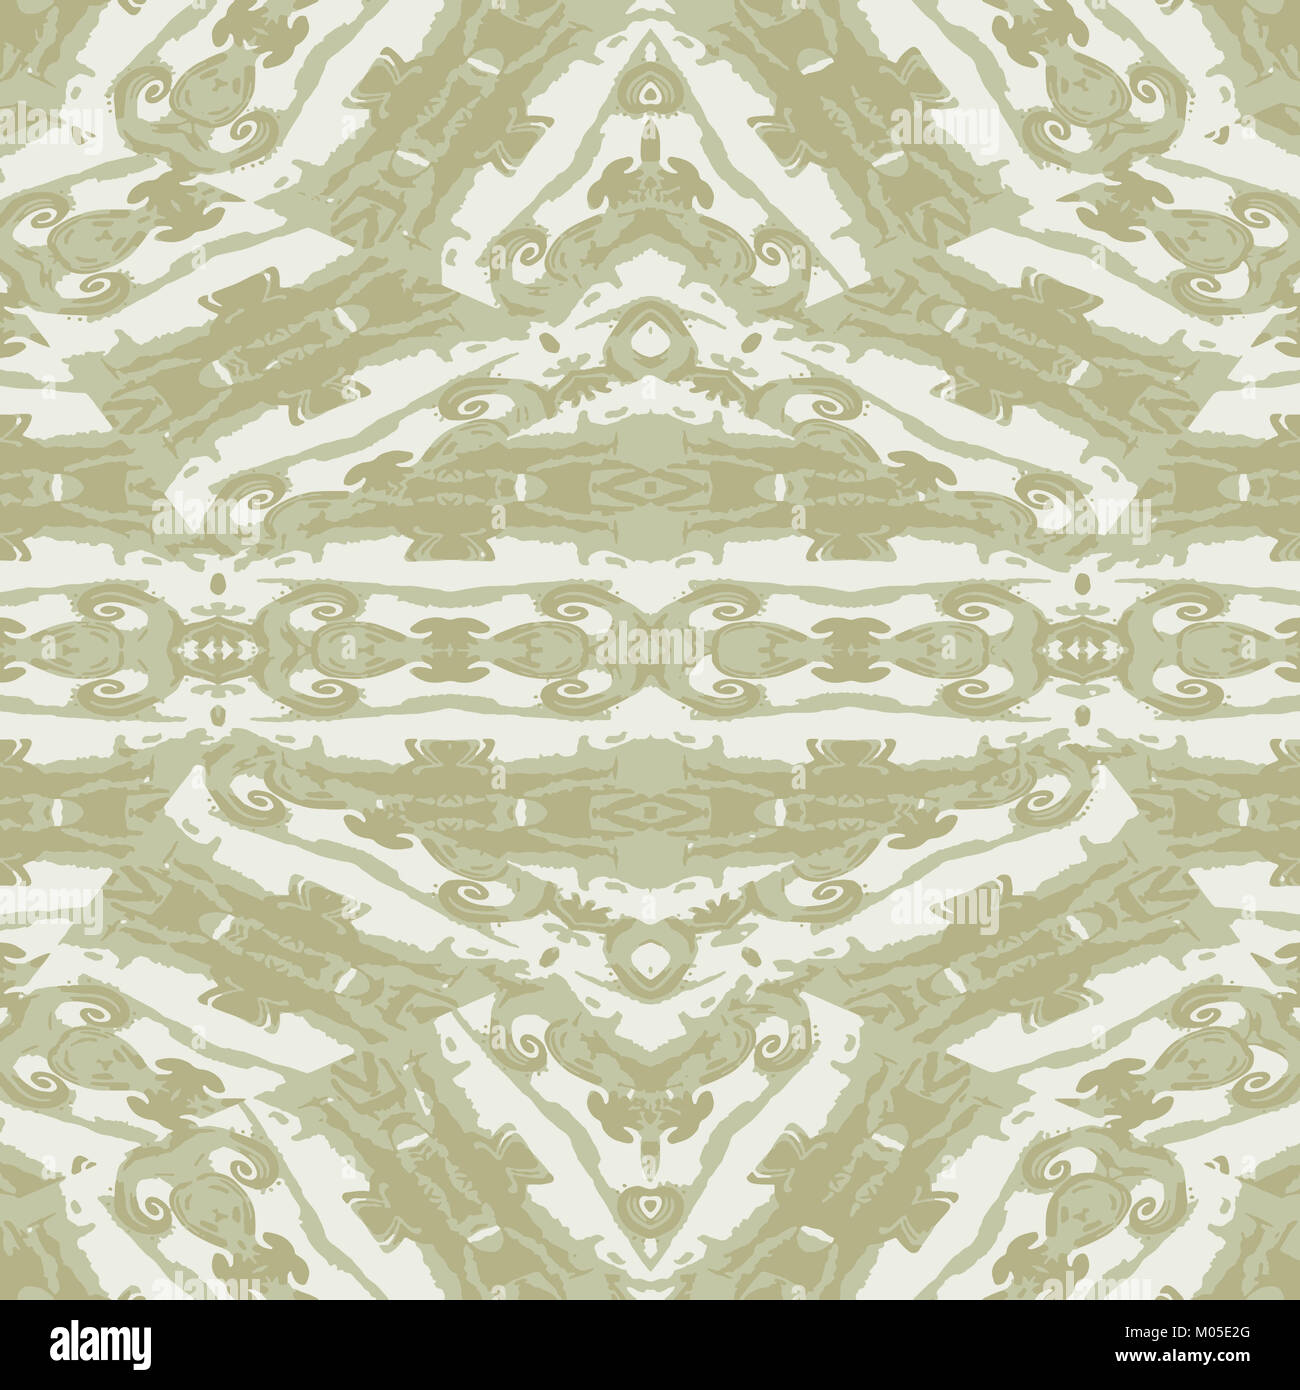 Digital art technique ornate baroque seamless pattern design in pale brown and white colors Stock Photo